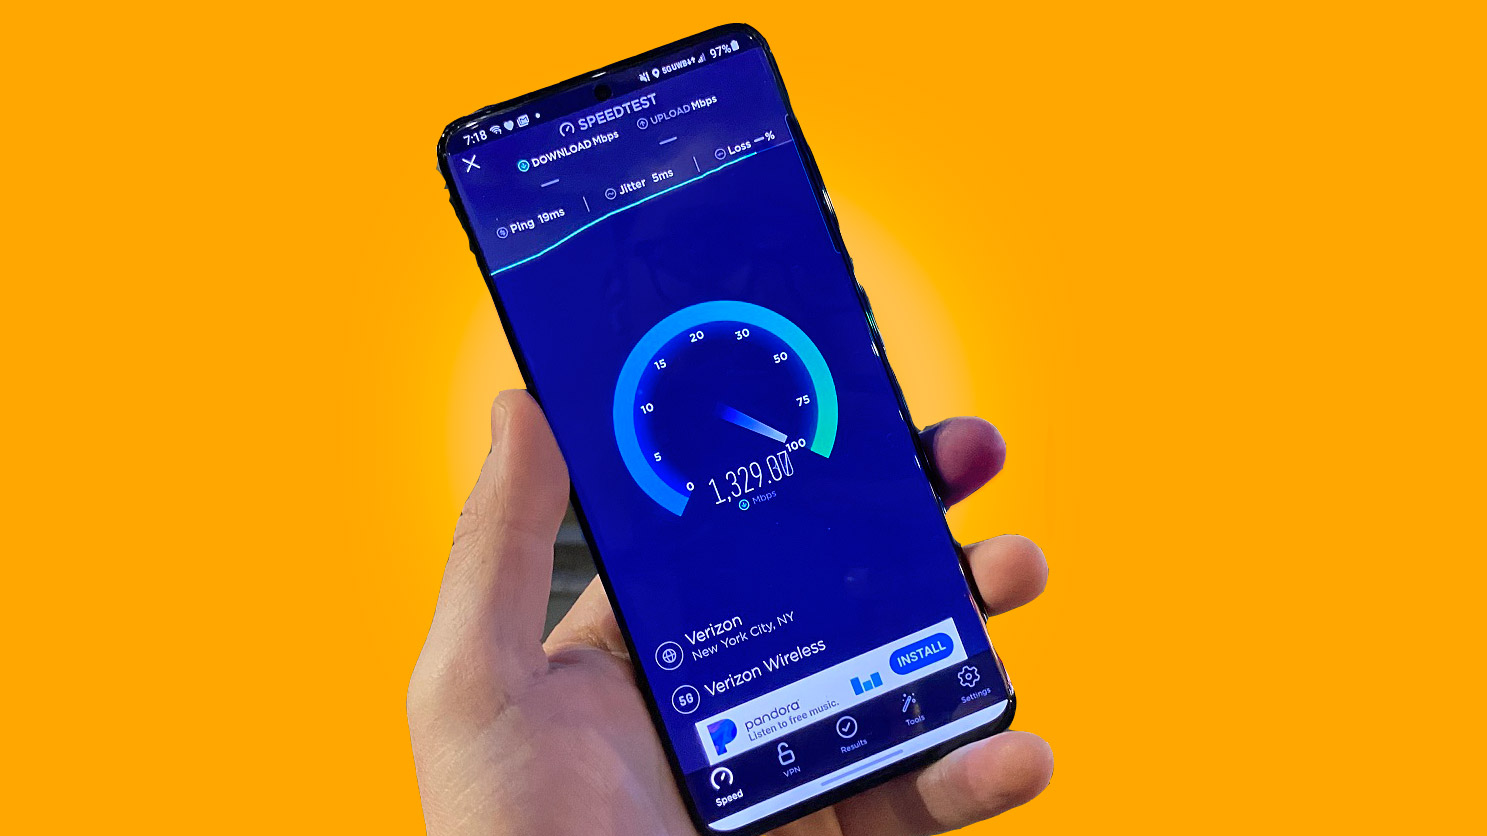 Best No Contract Cell Phone Plans 2021 Best 5G phones 2020: the top handsets with next gen connectivity